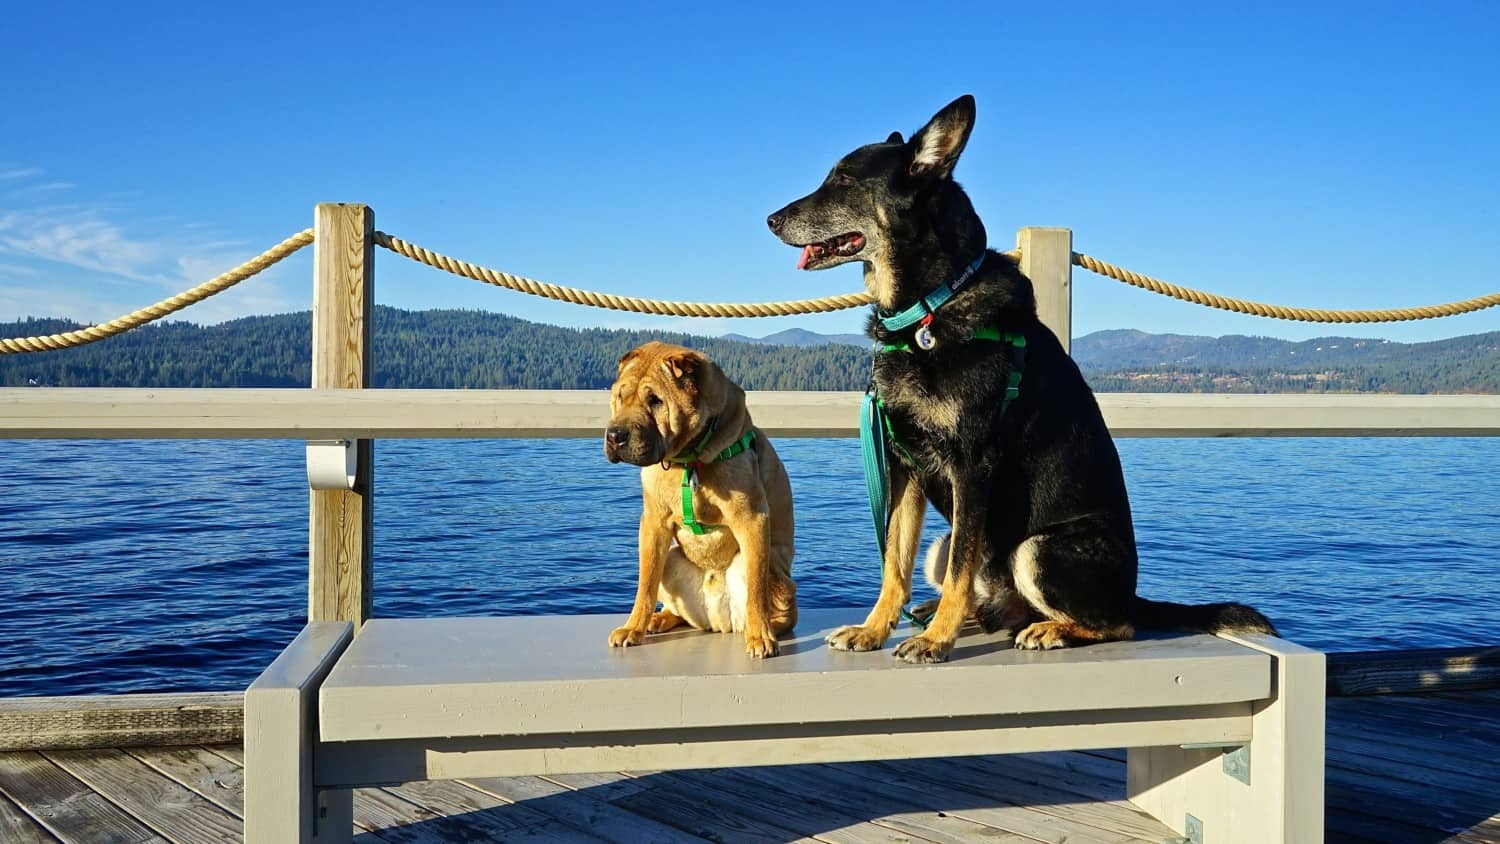 Pet Friendly Things To Do In Coeur d'Alene, Idaho